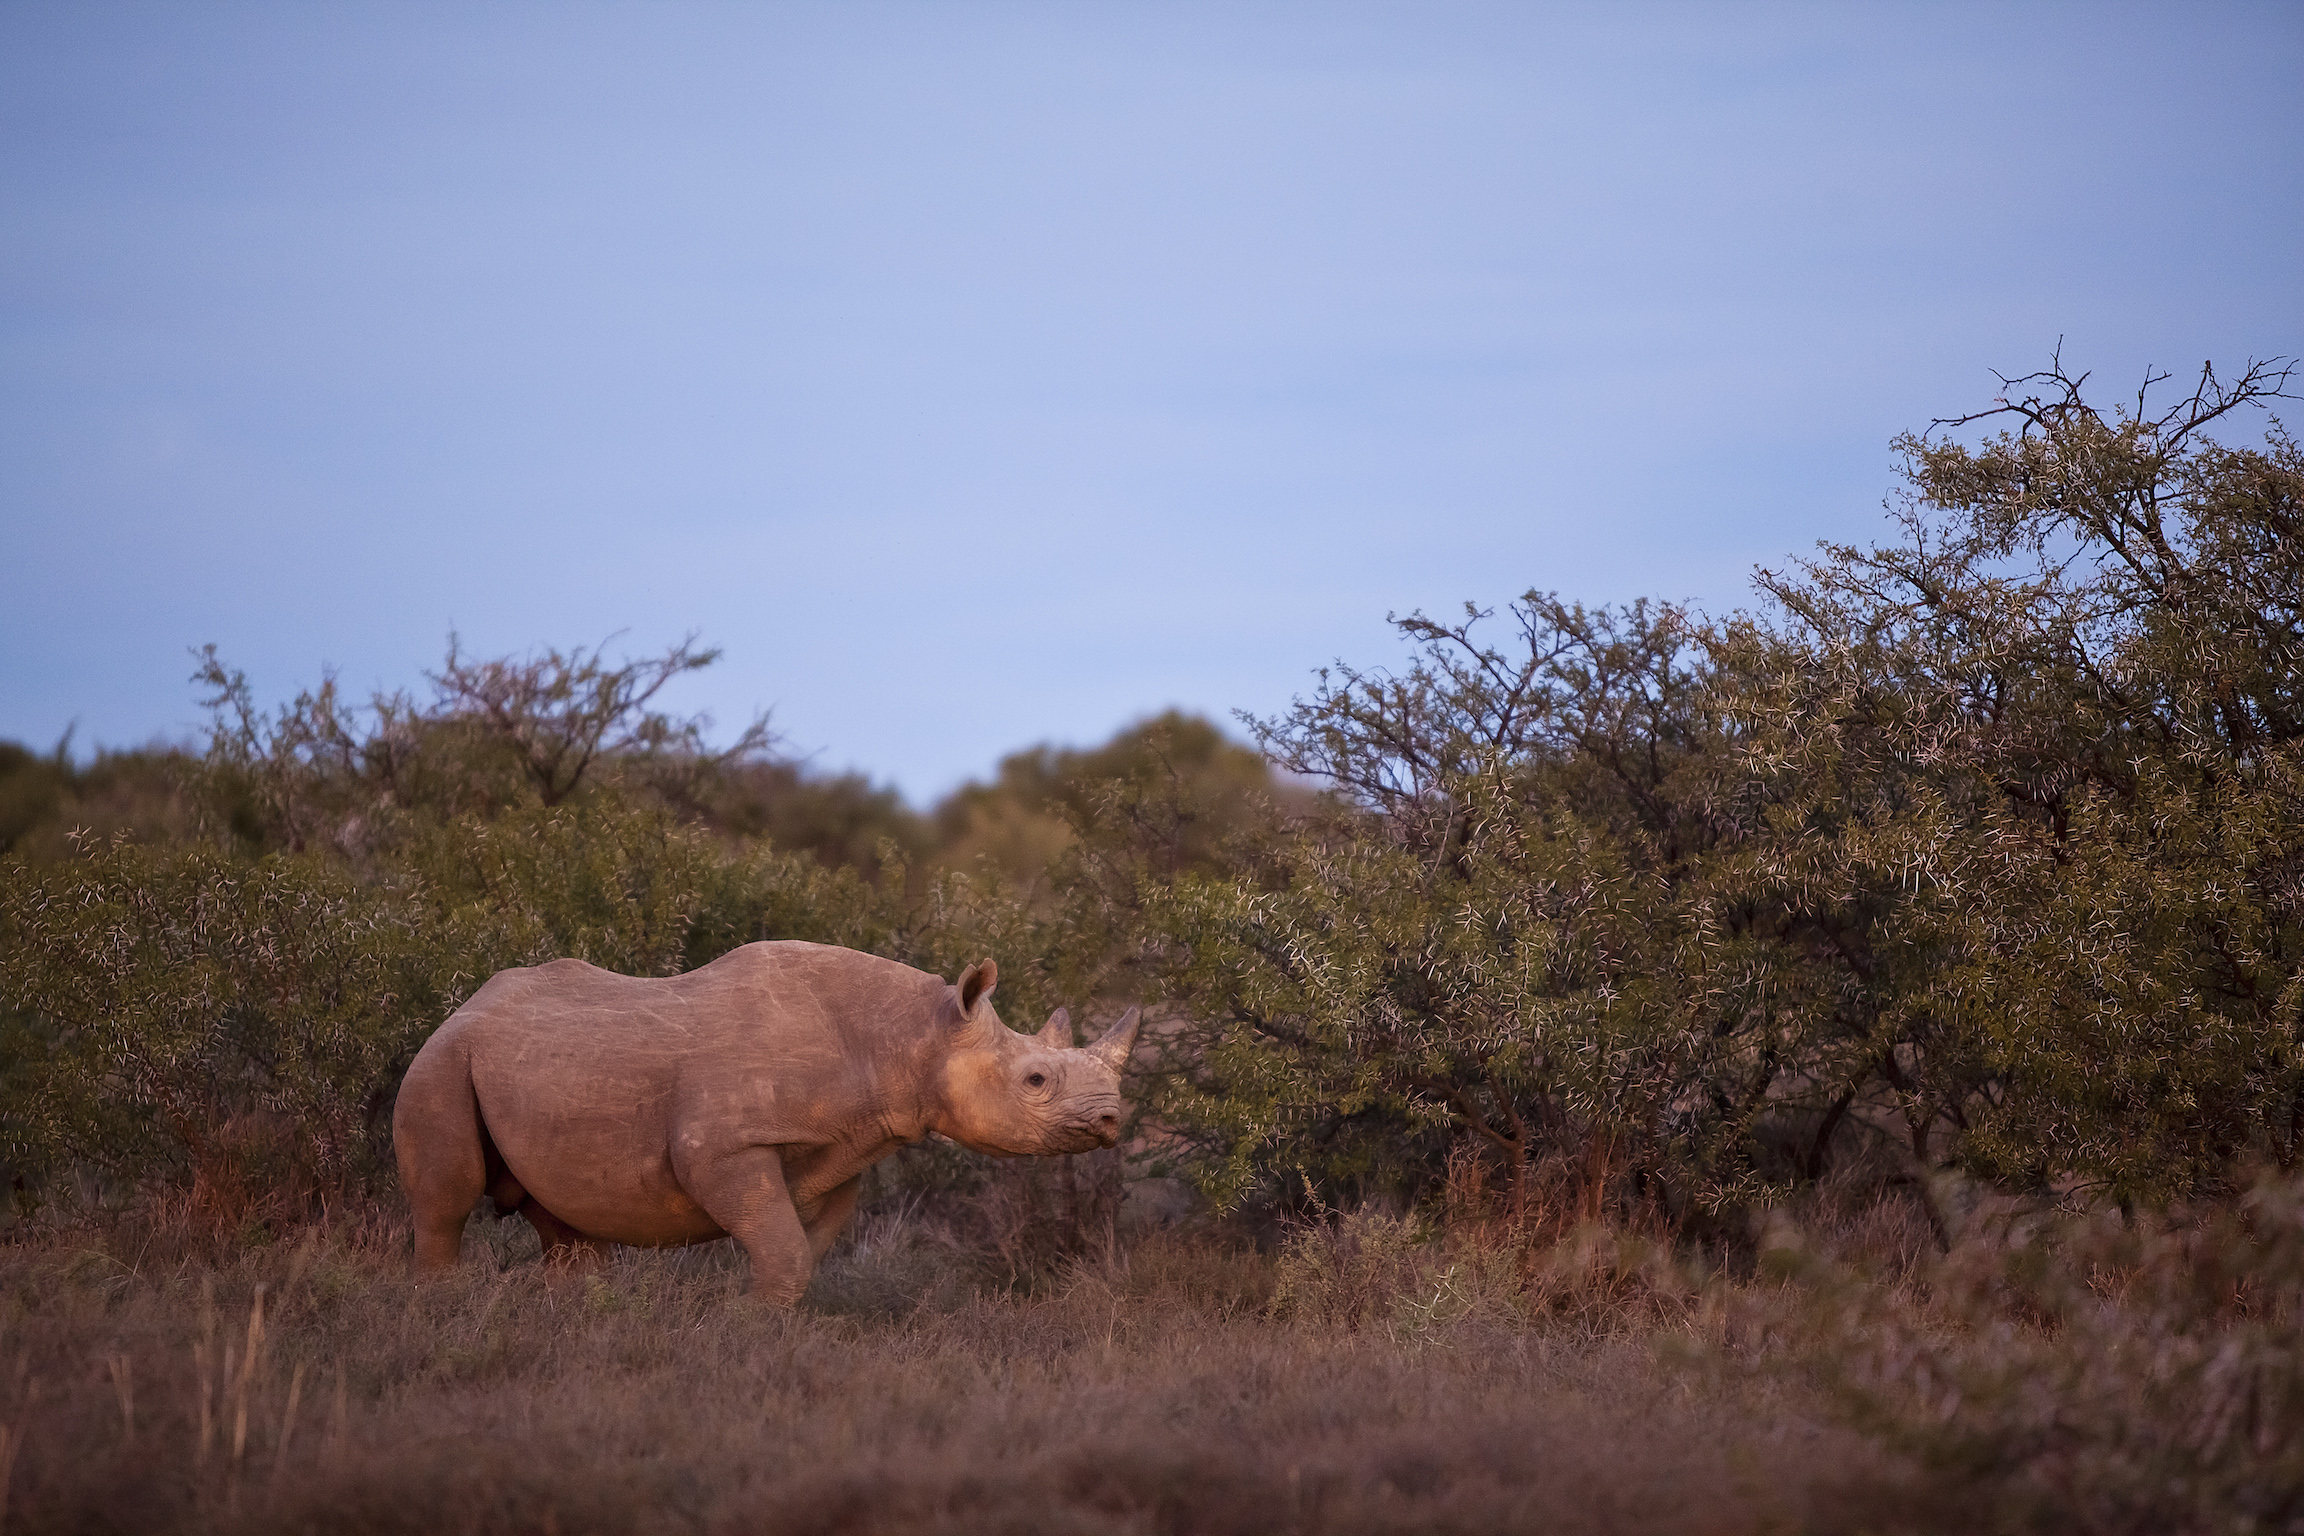 black-rhinoceros-samara-karoo-safari-eti